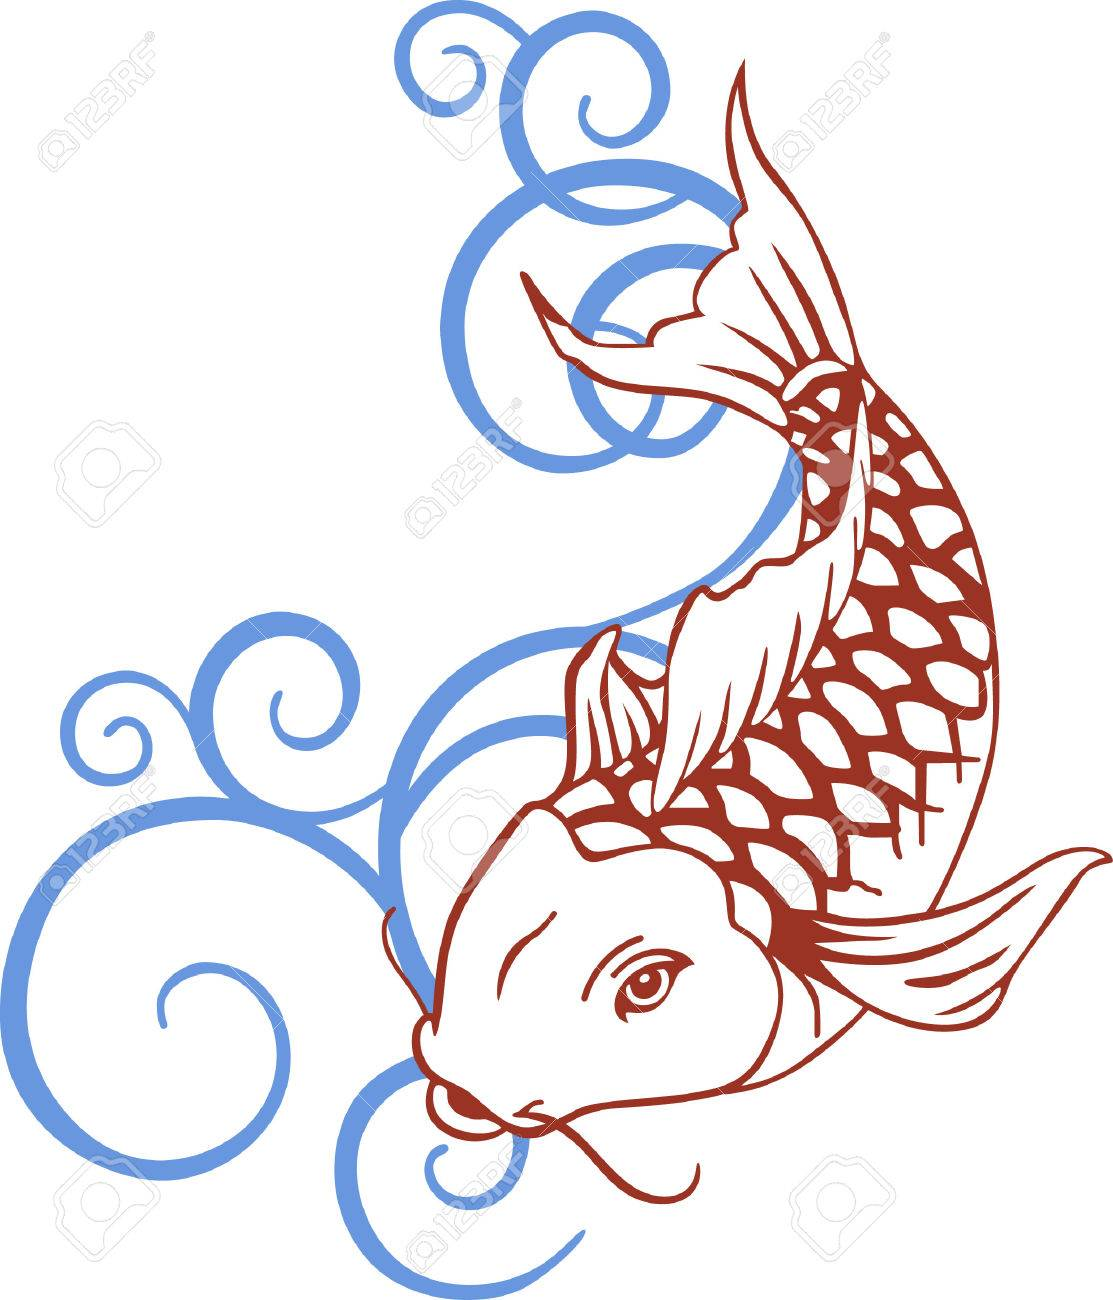 The Koi Is A Symbol Of A Persons Ability To Have High Expectations